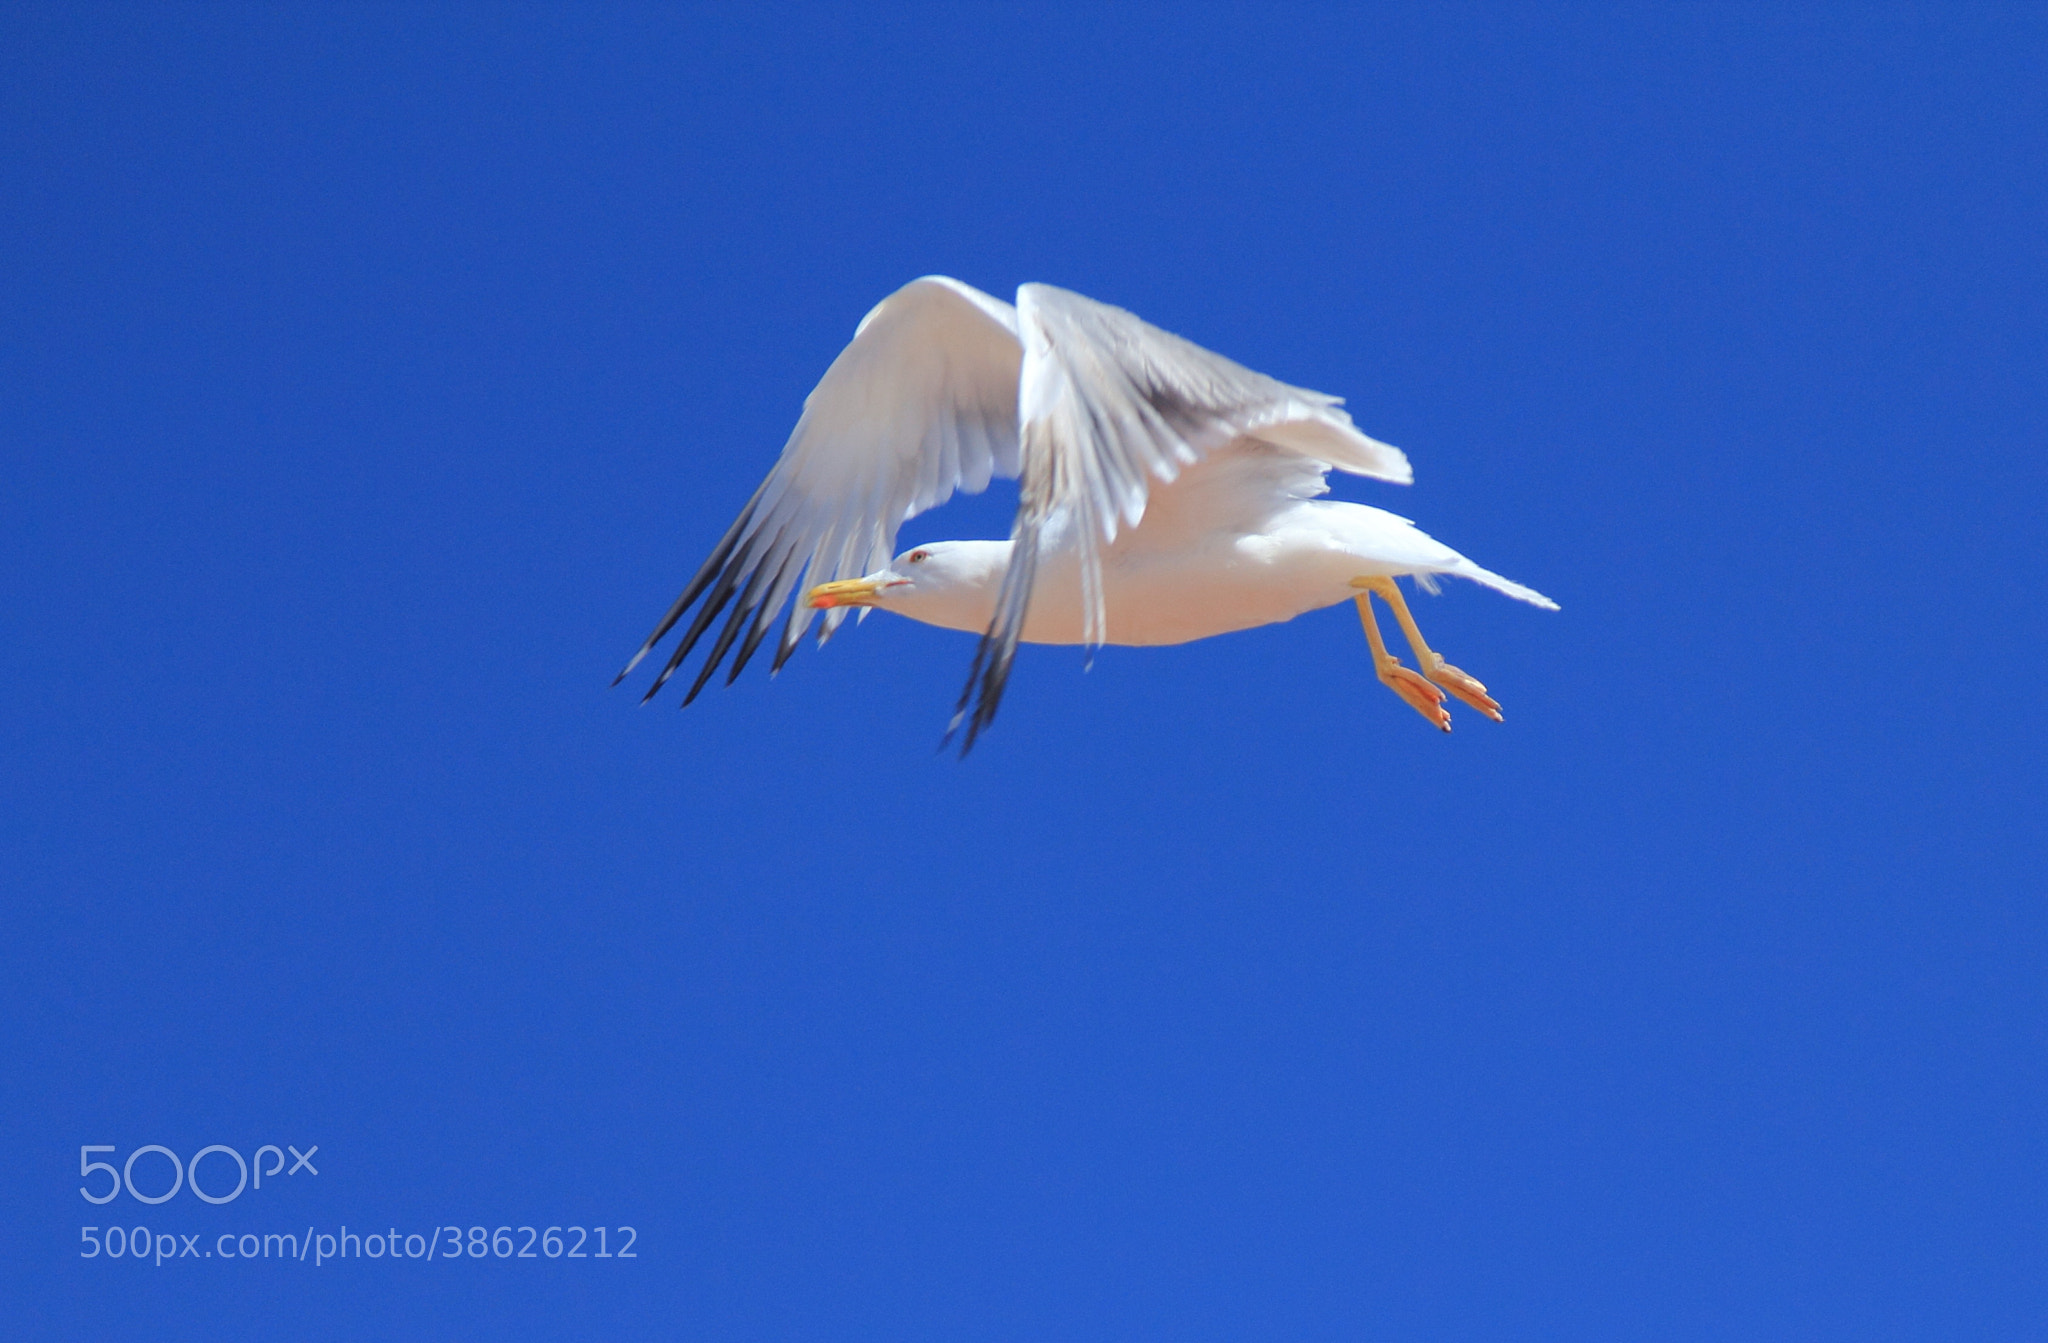 Photograph Flying European Herring Gull by Eva Lechner on 500px